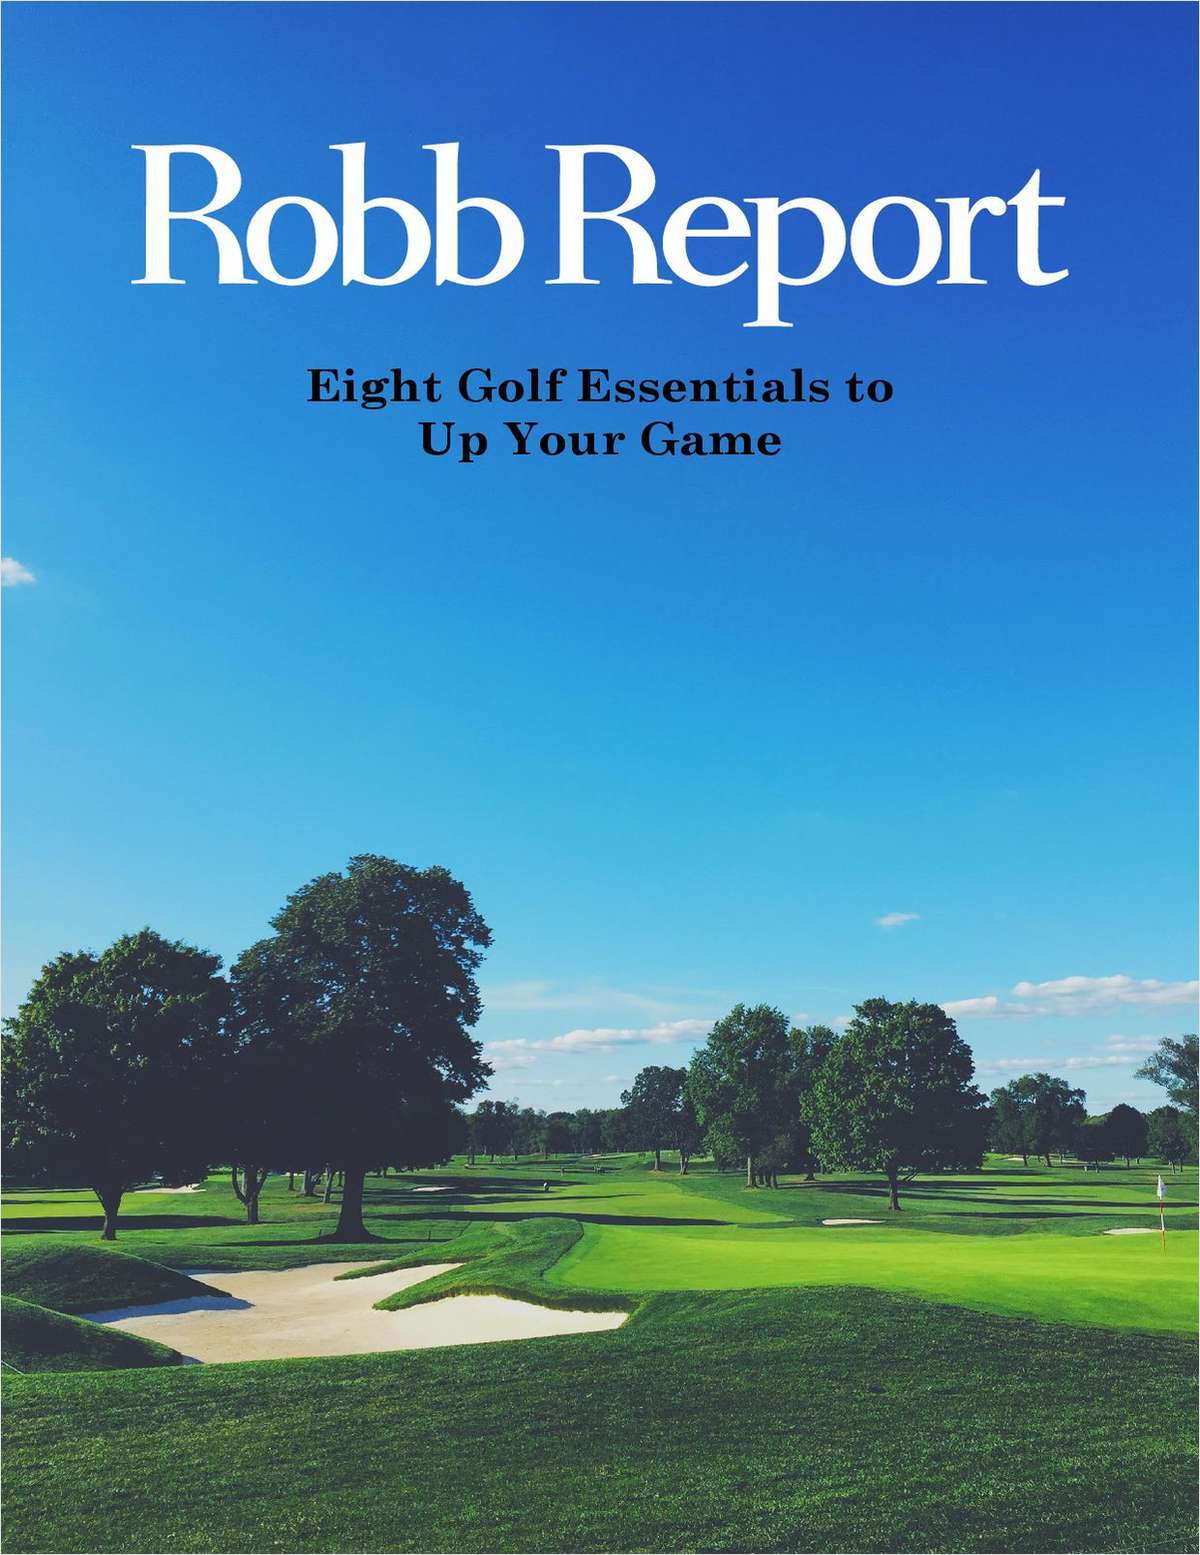 Eight Golf Essentials to Up Your Game